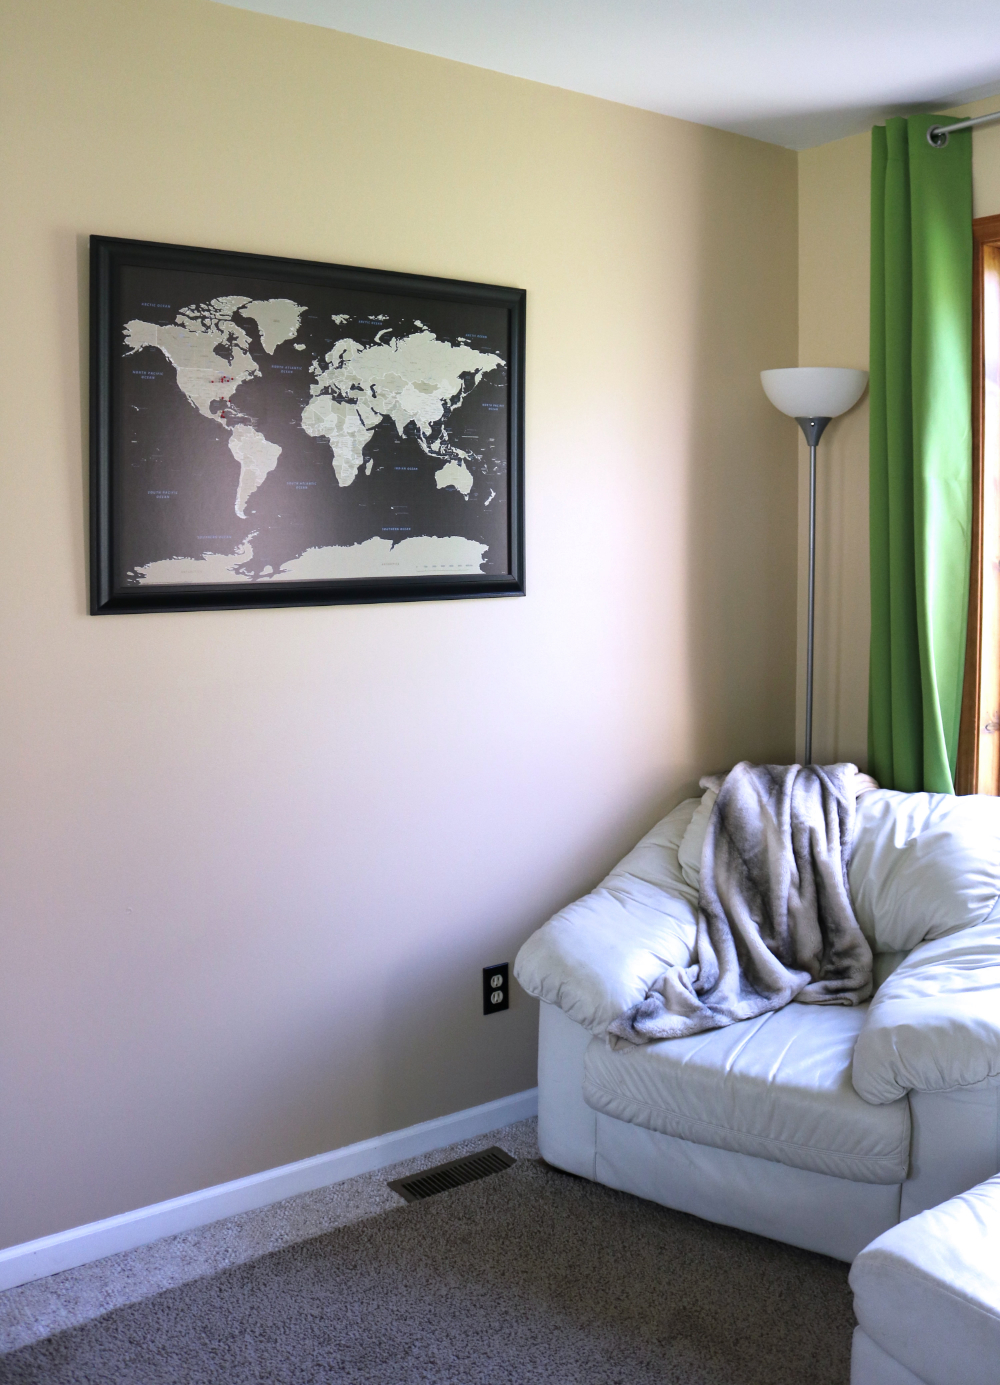 Earth tone push pin travel map framed in black hanging on sandstone living room wall.